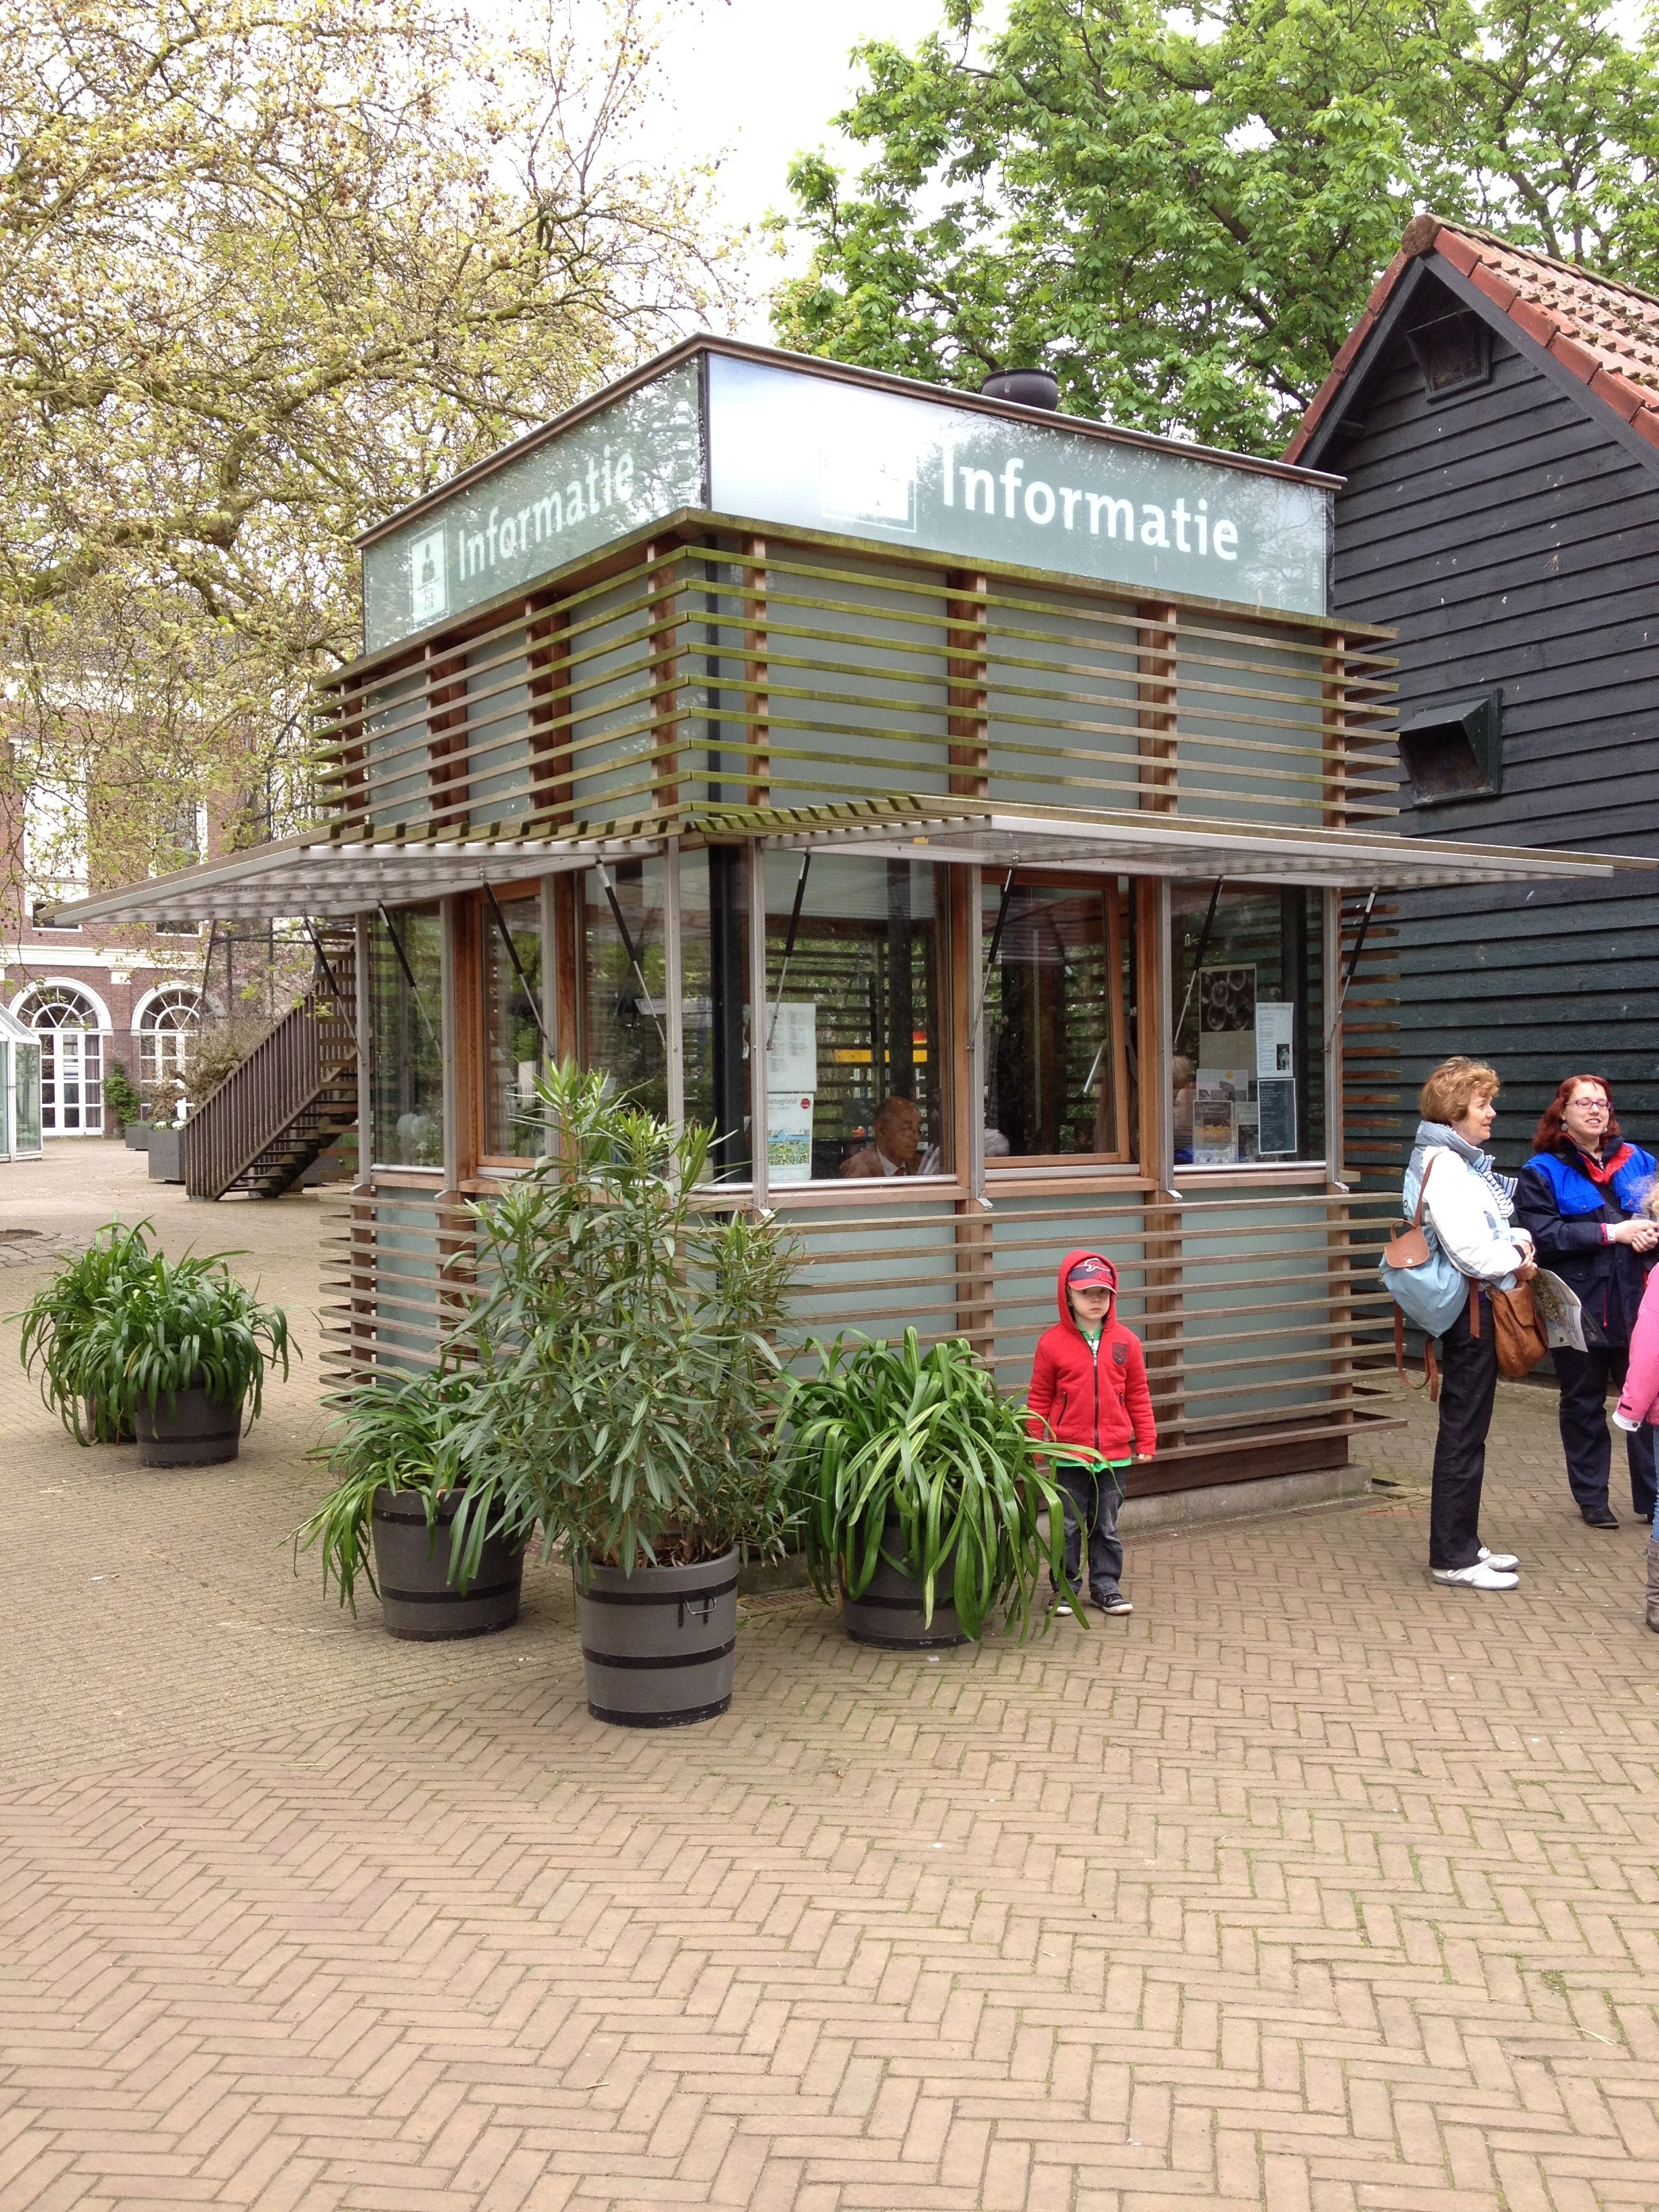 Information Booth Artis Royal Zoo Amsterdam Arquitectura